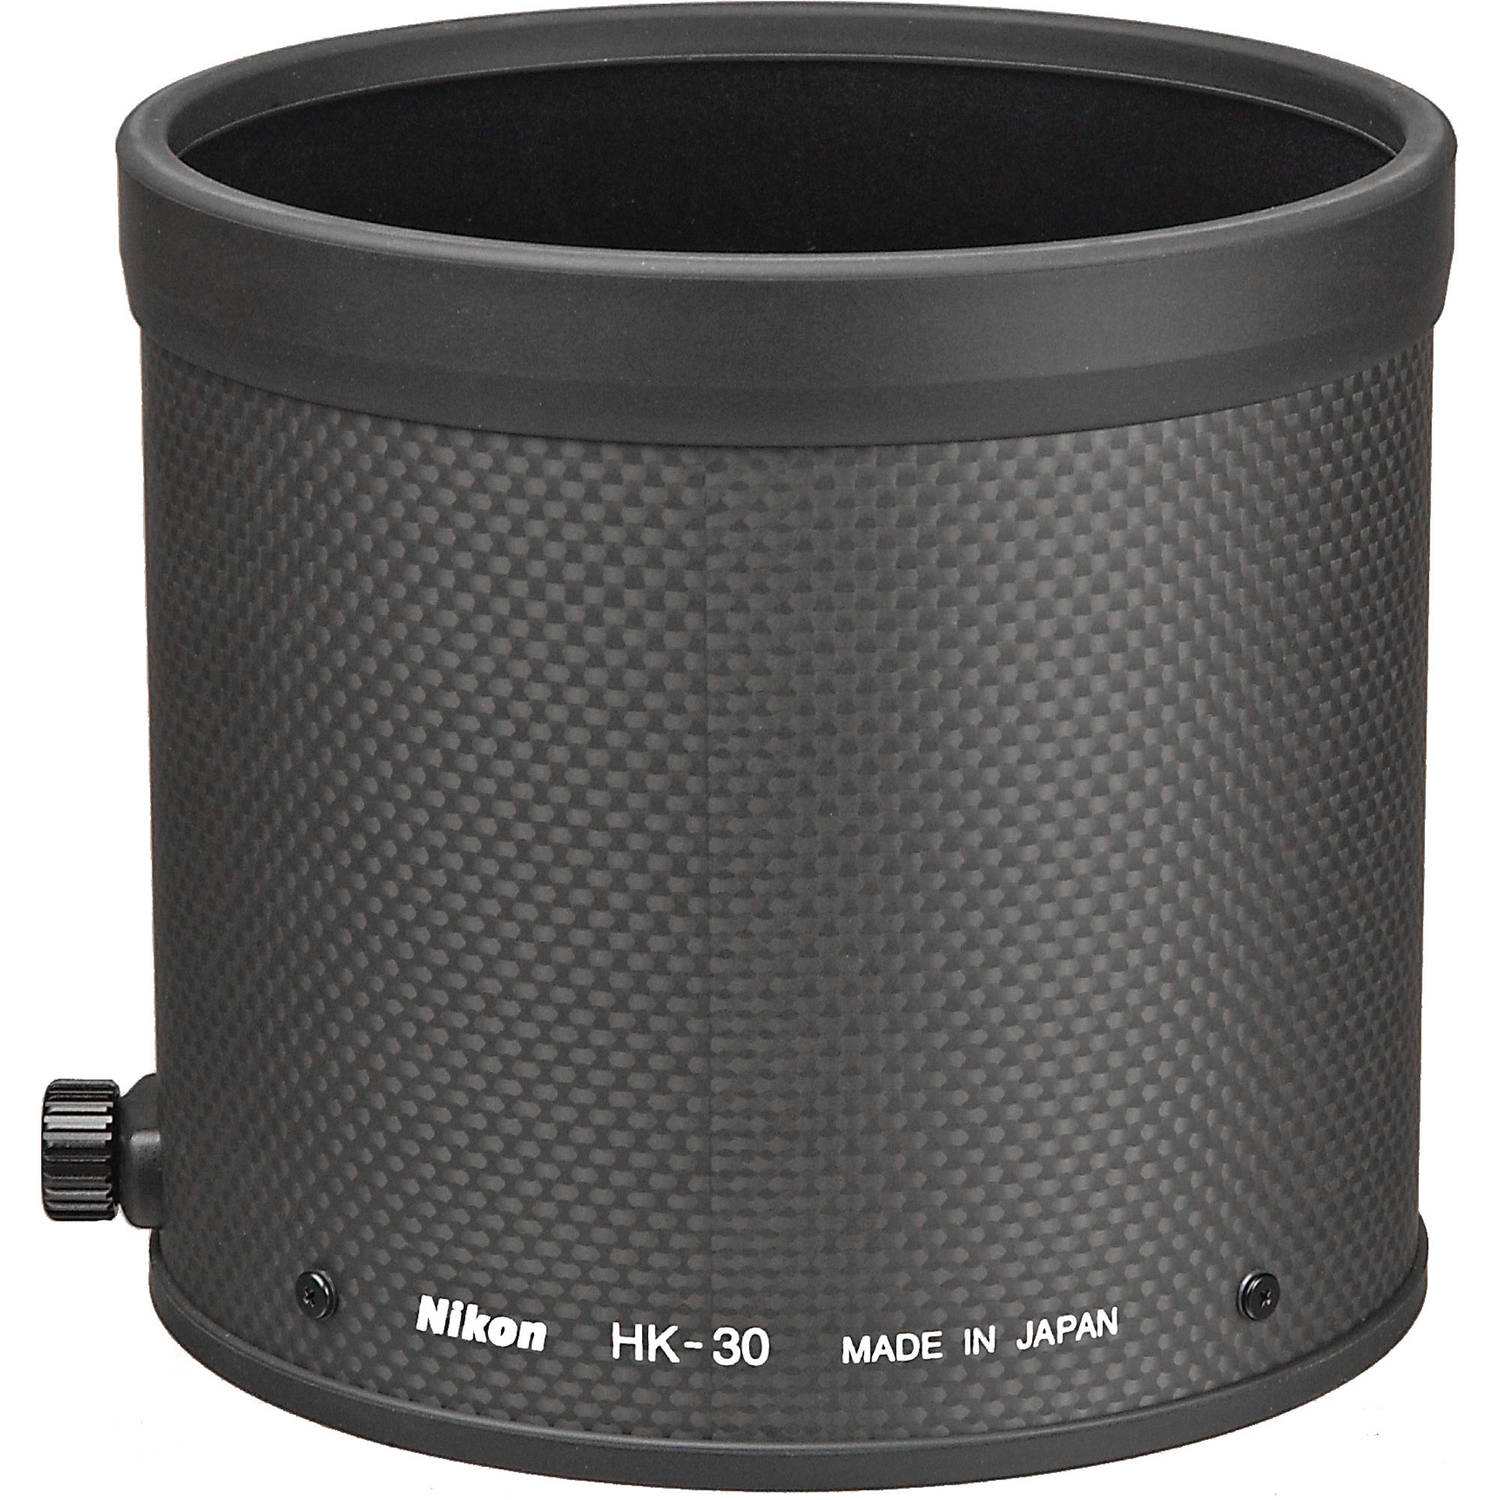 Nikon HK-30 Lens Hood (Slip-On) for 200-400mm f/4 & 300mm f/2.8 VR Lenses